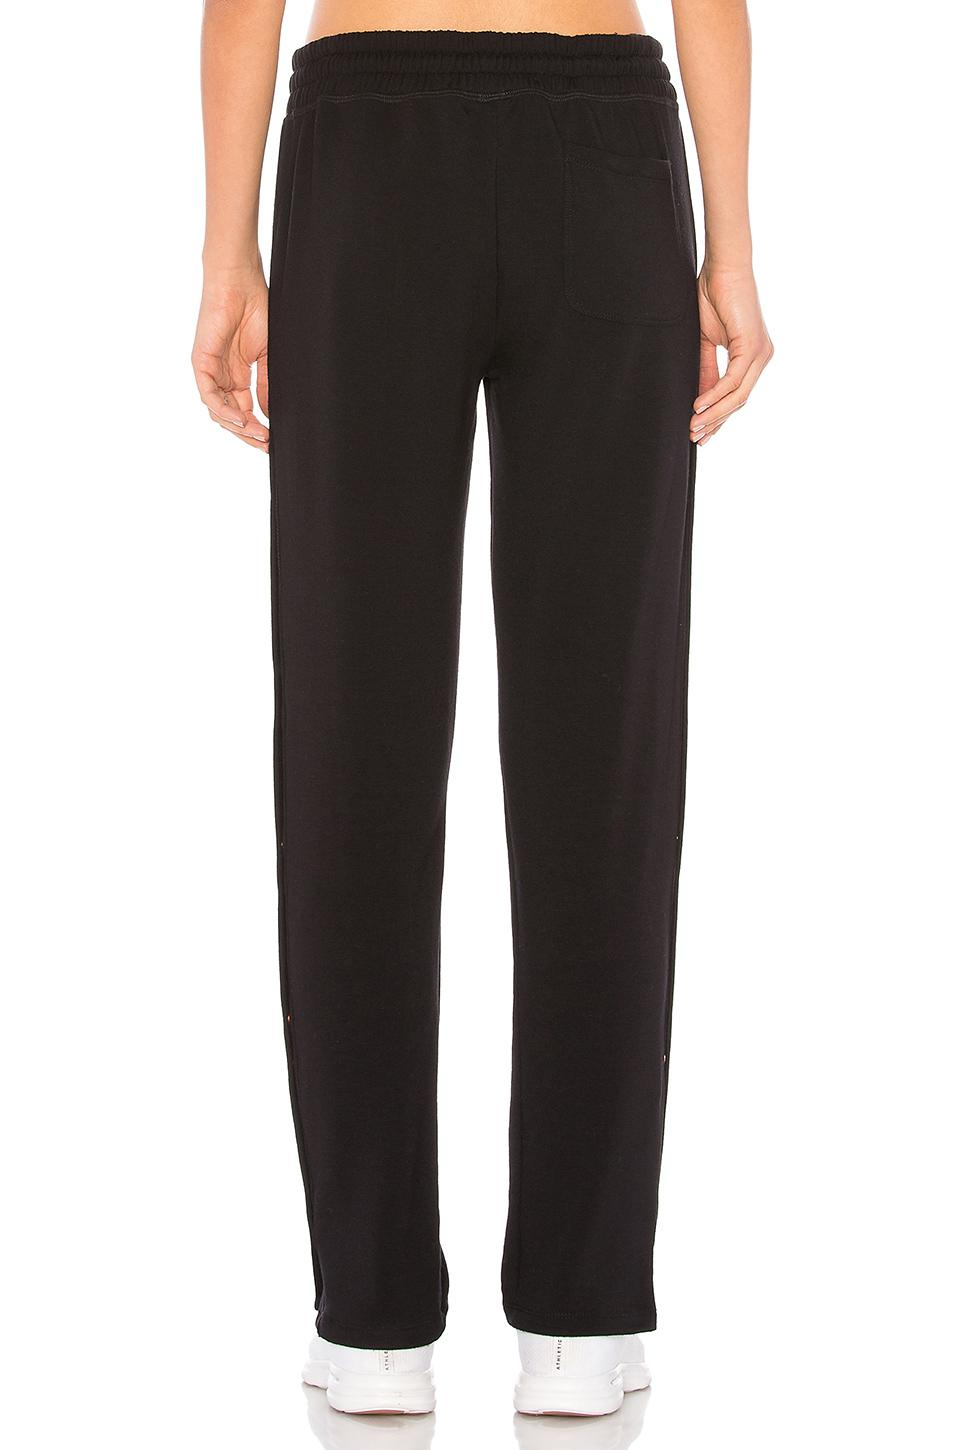 Beyond Yoga Synthetic Snap It Up Sweatpant in Black